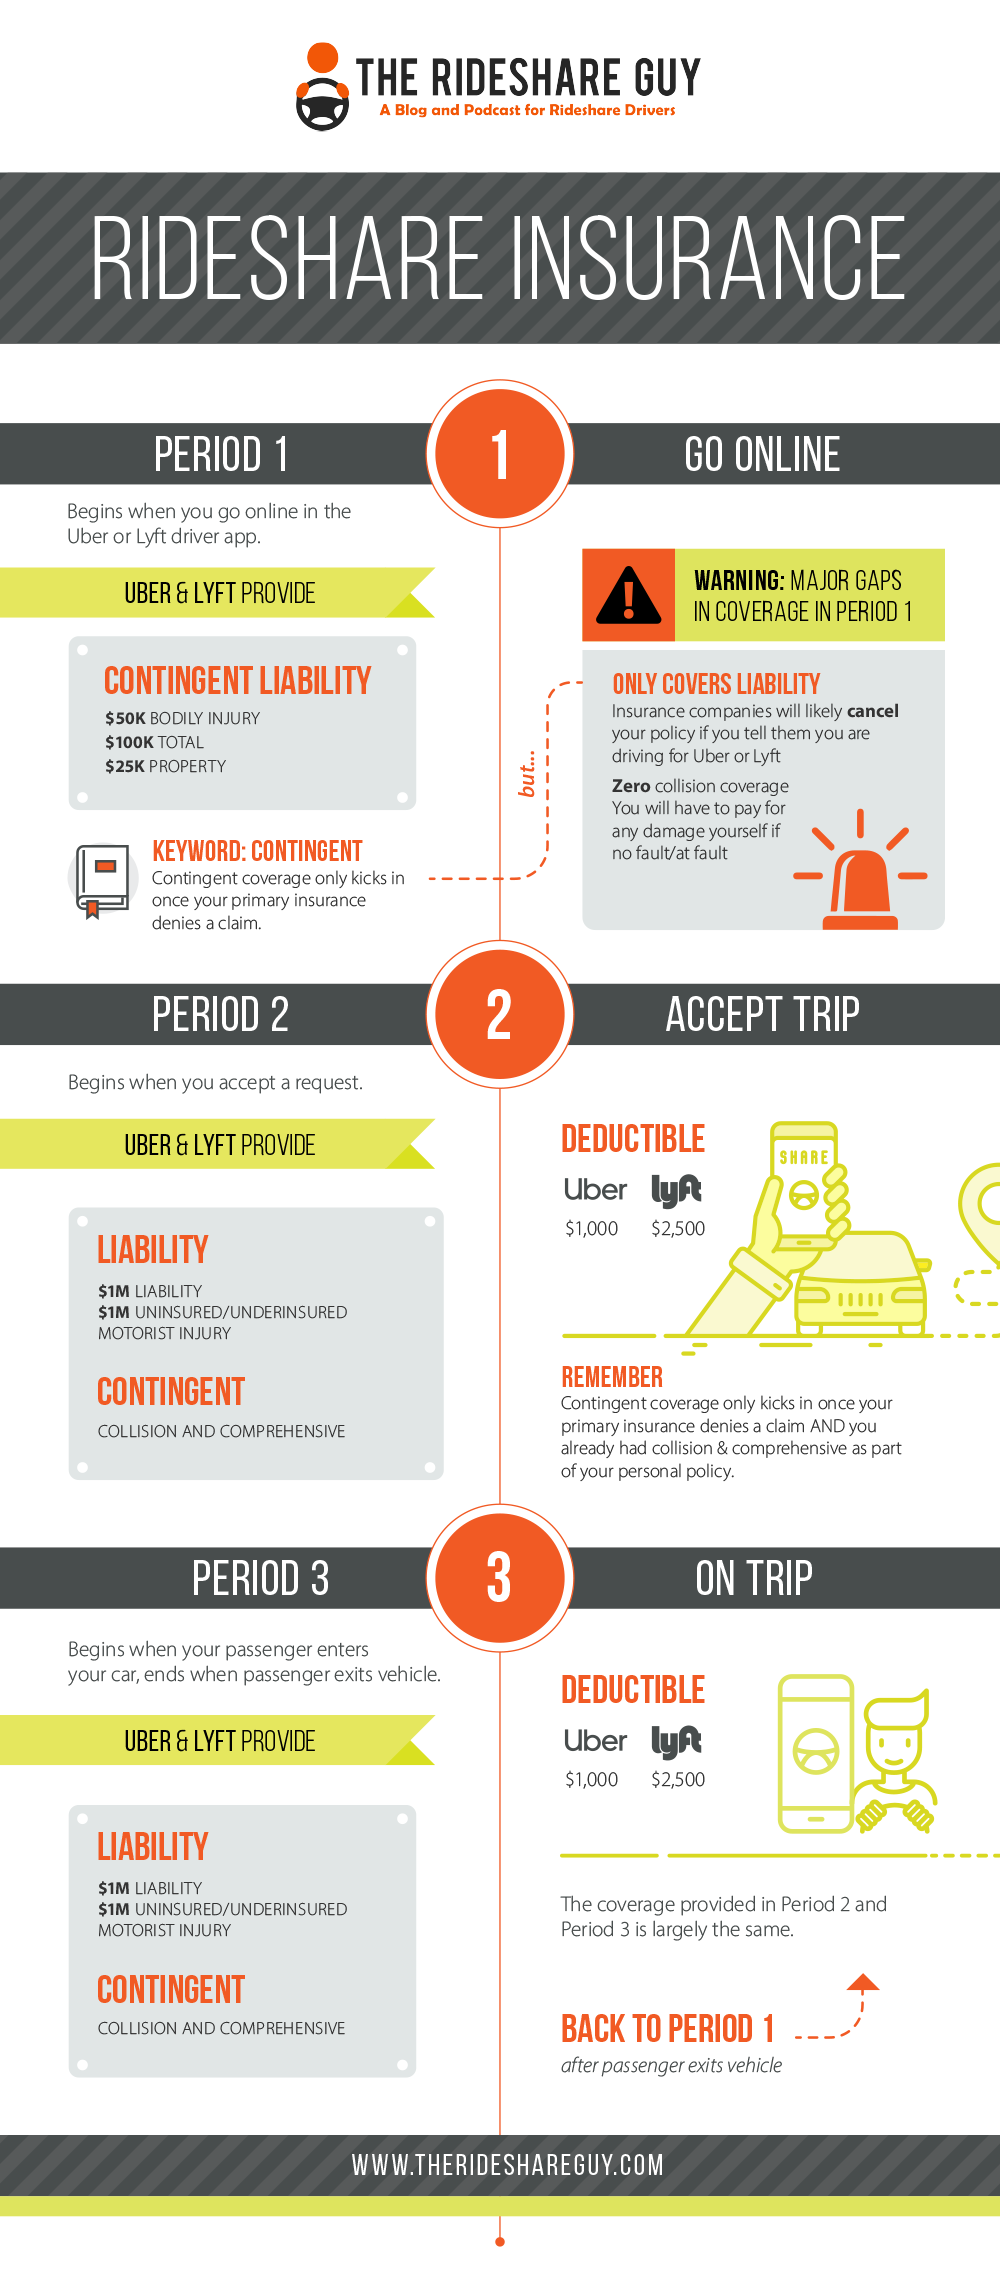 image of rideshare insurance infographic